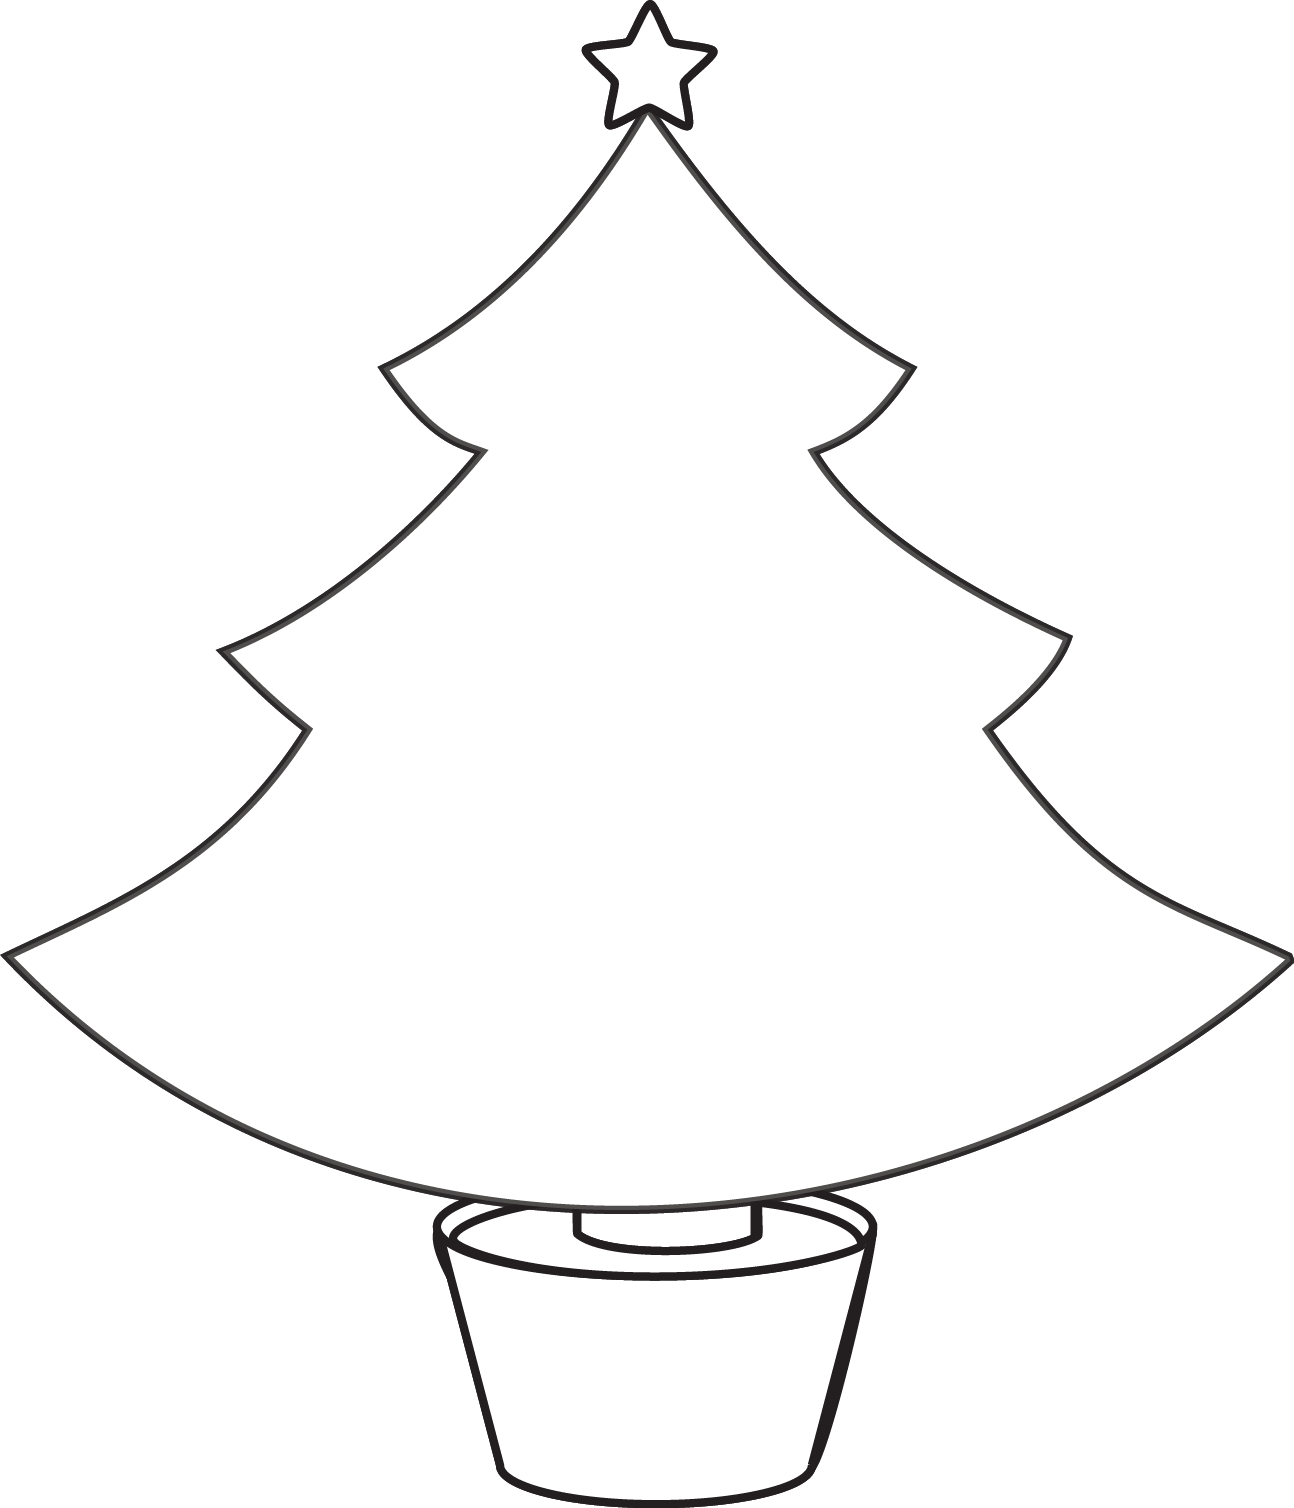 Drawn christmas ornaments bulb Tree clip free Coloring download